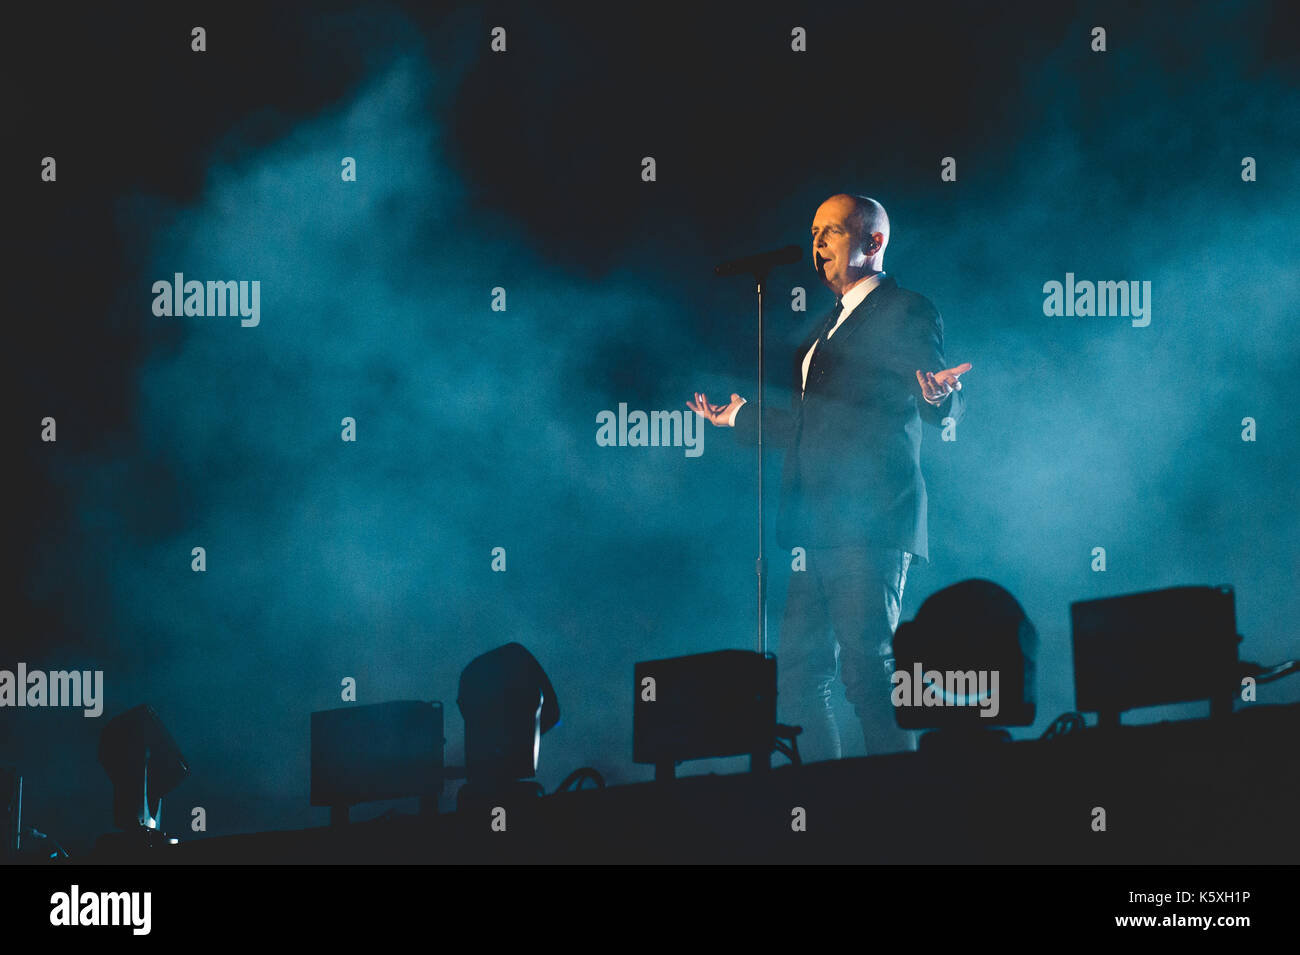 52f82d9c0 Day 4 - Pet Shop Boys - Bestival Music Festival returns in 2017 at it's new  home, Lulworth Castle. Credit: Will Bailey/Alamy Live News